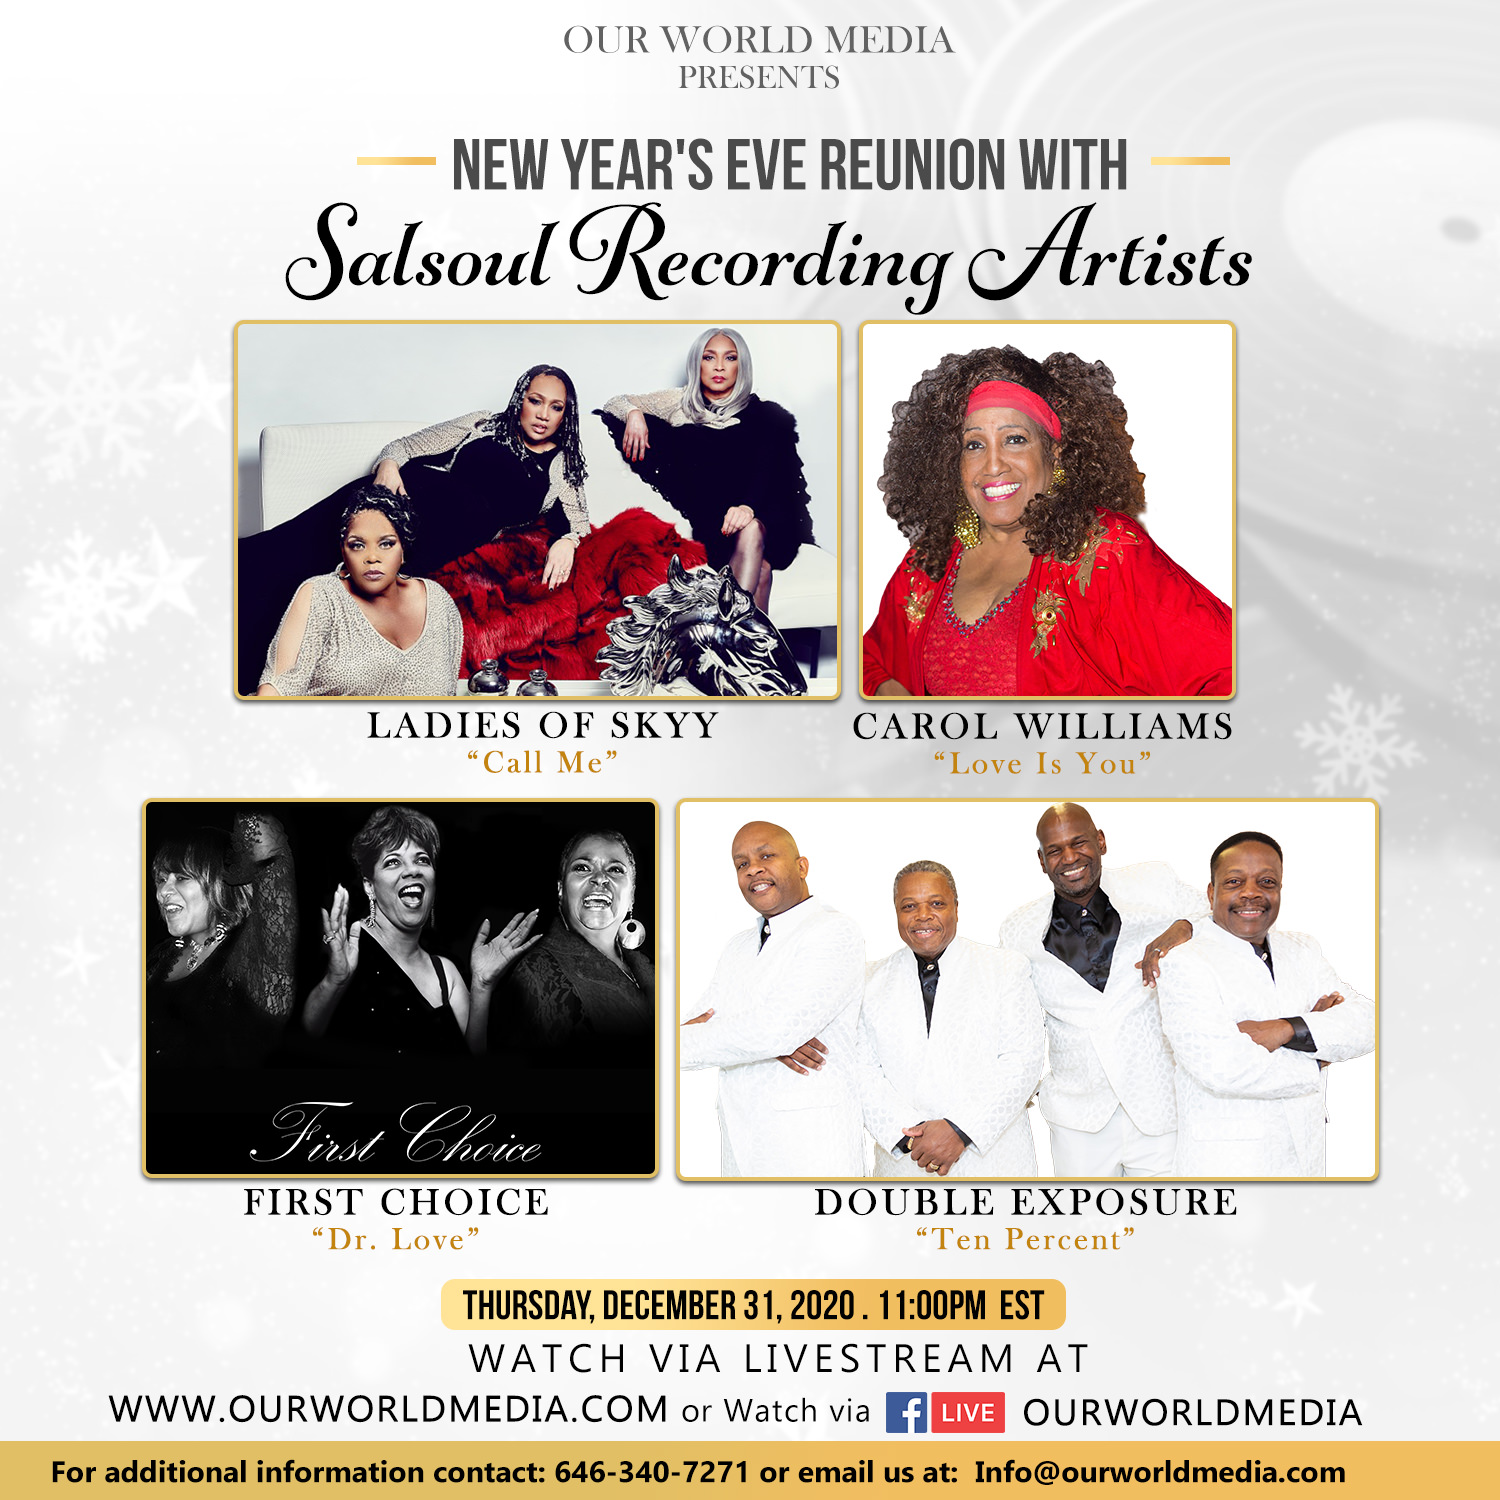 New Year's Eve reunion with Salsoul Recording Artist